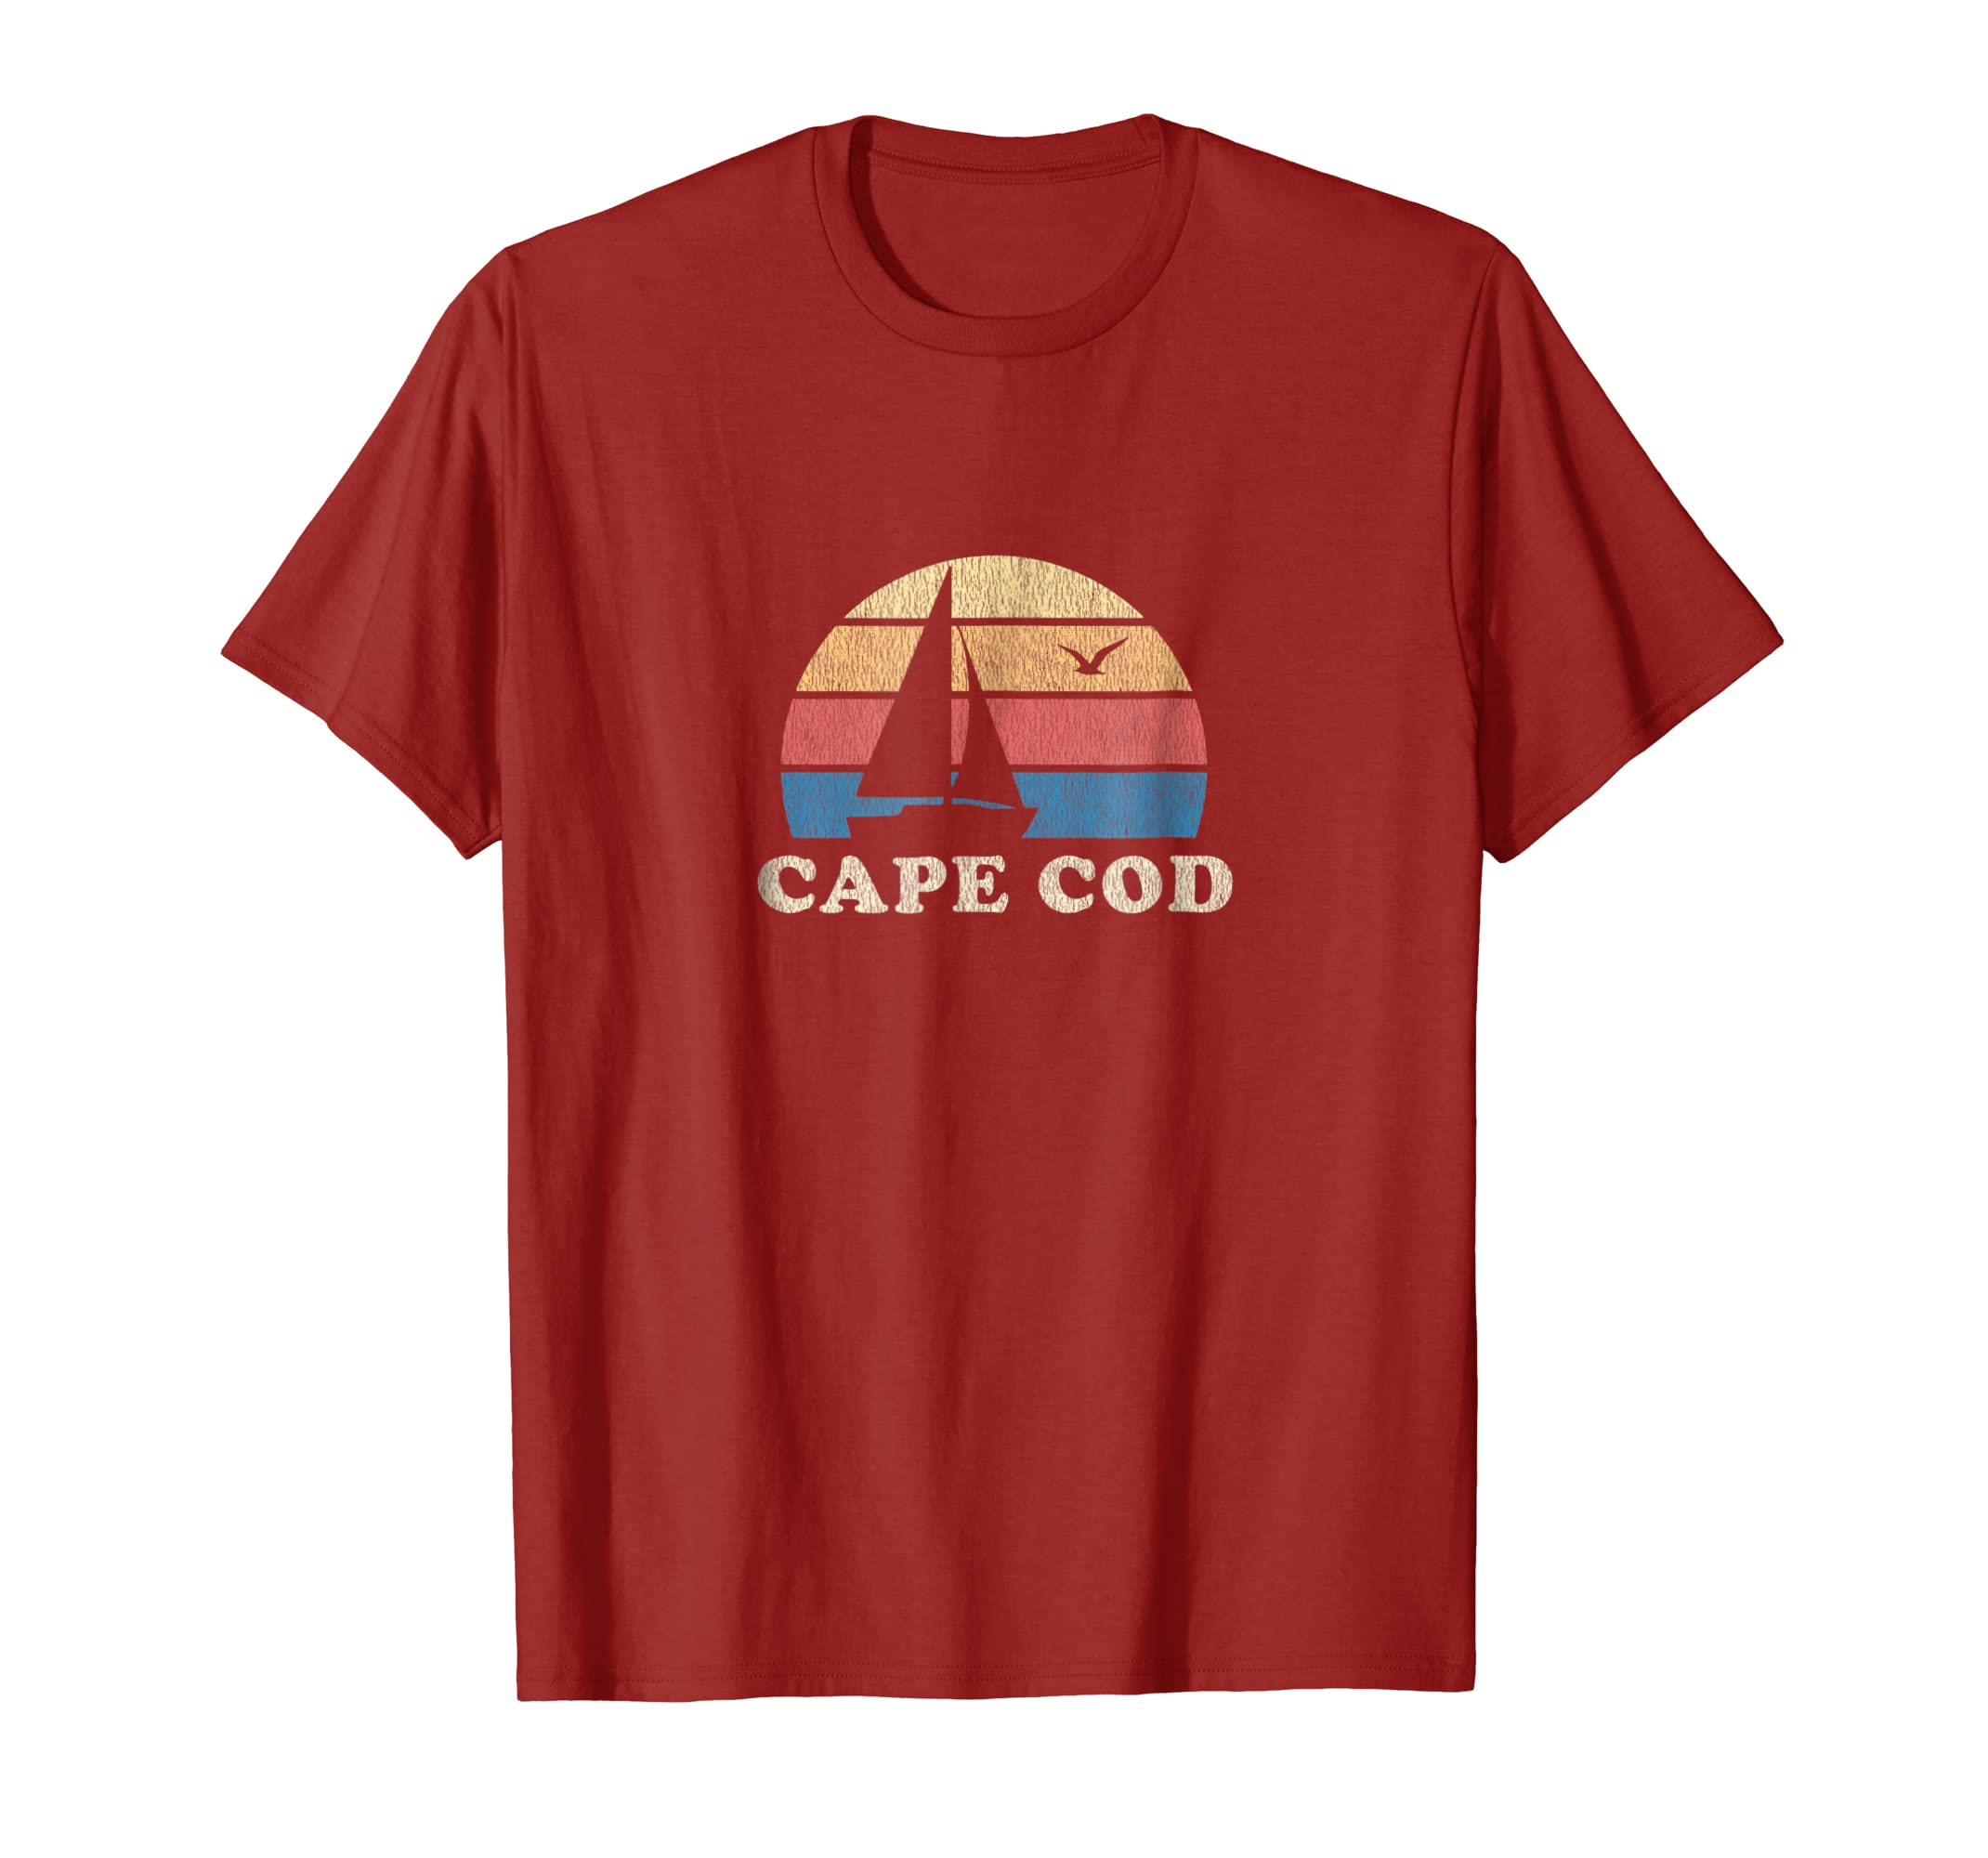 Cape Cod MA T Shirt Vintage Sailboat 70s Throwback Sunset-Colonhue